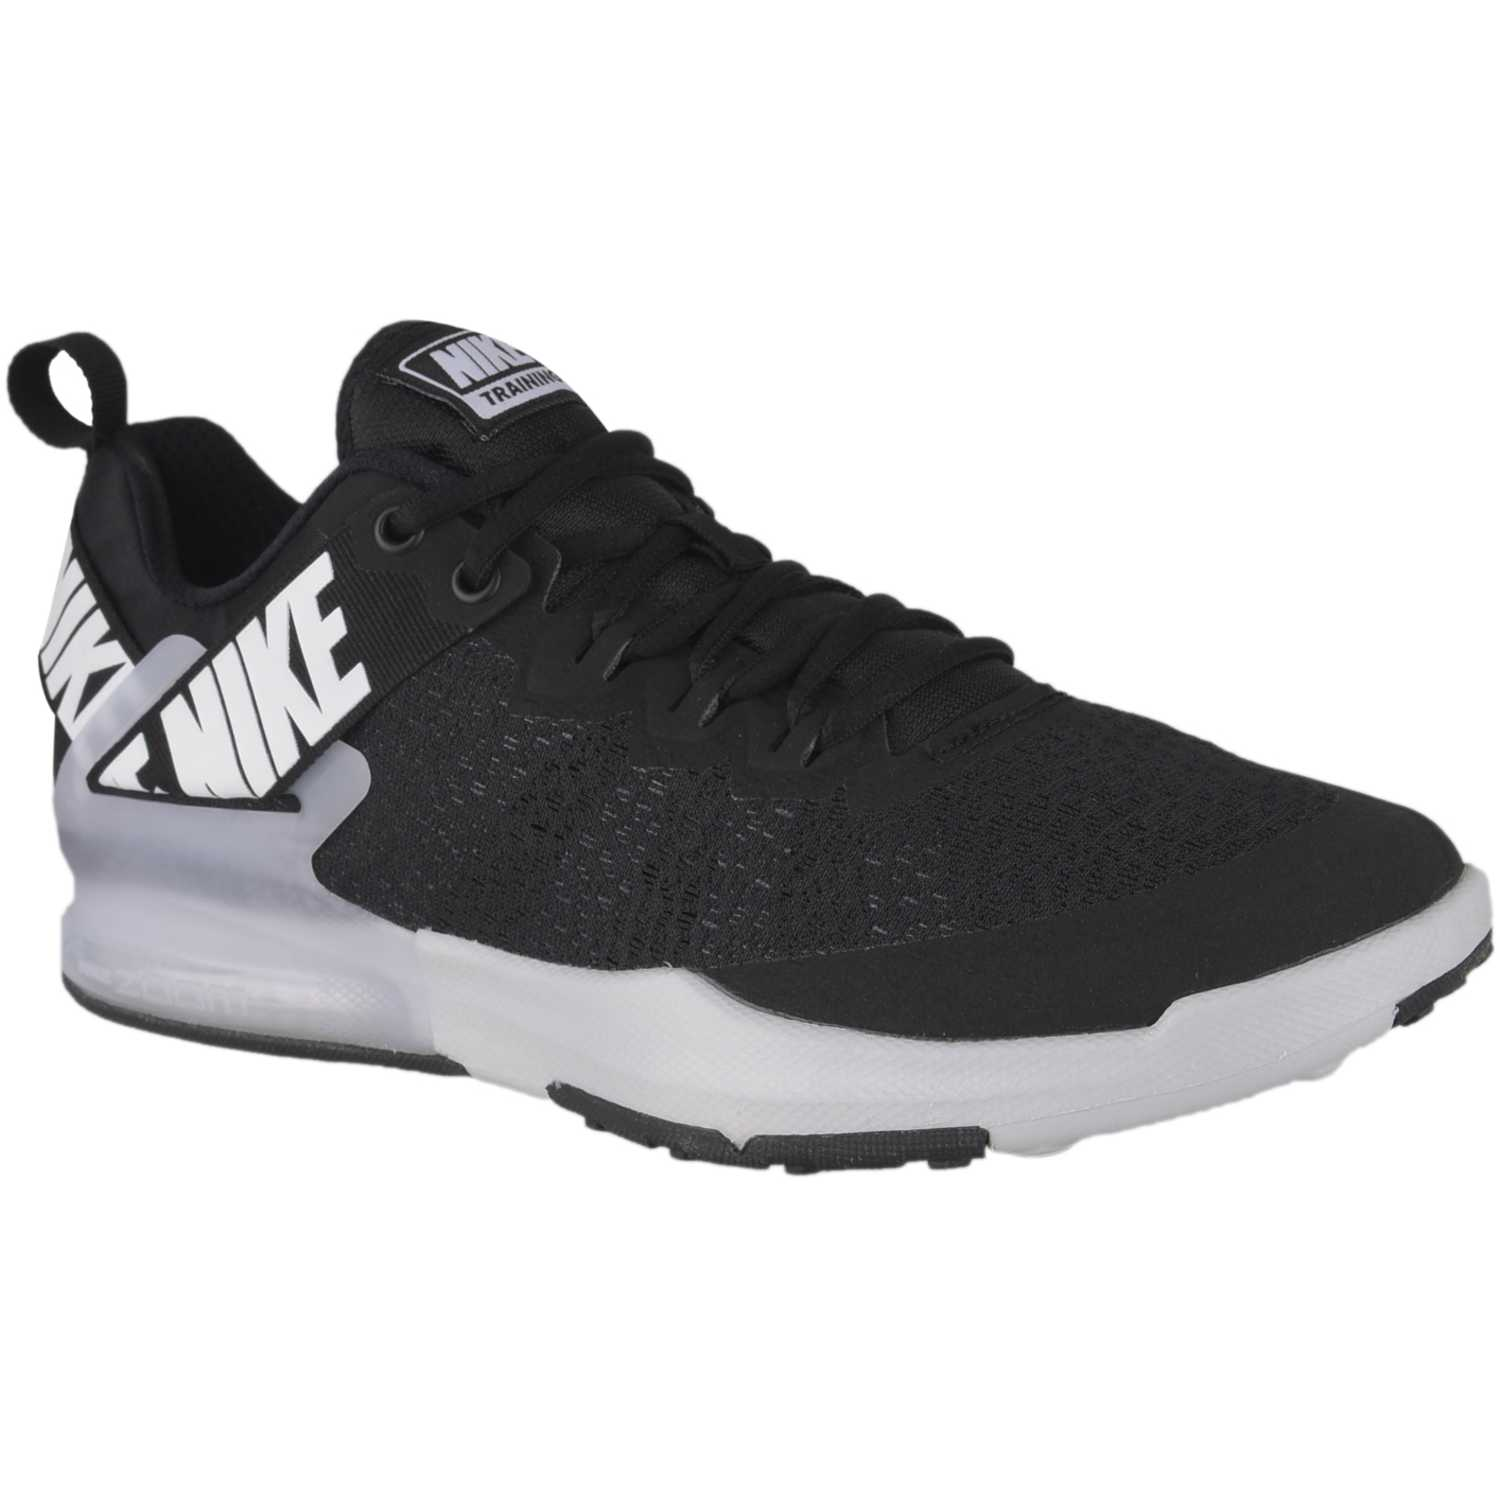 Nike Nike Zoom Domination Tr 2 Negro / blanco Hombres